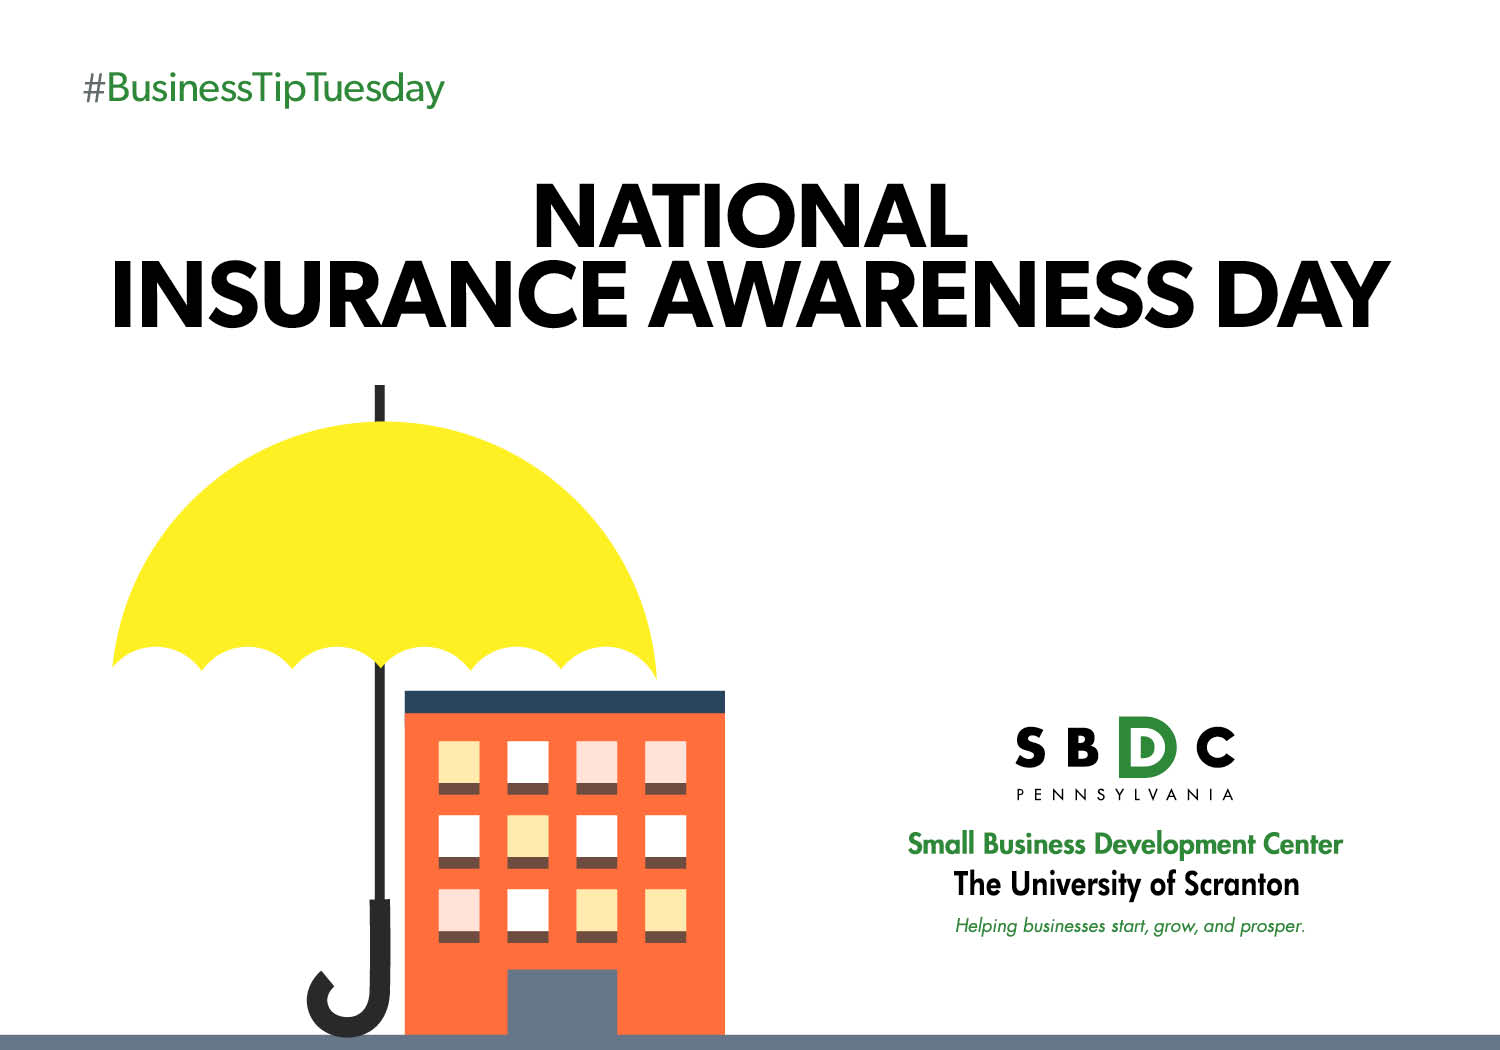 #BusinessTipTuesday – National Insurance Awareness Day